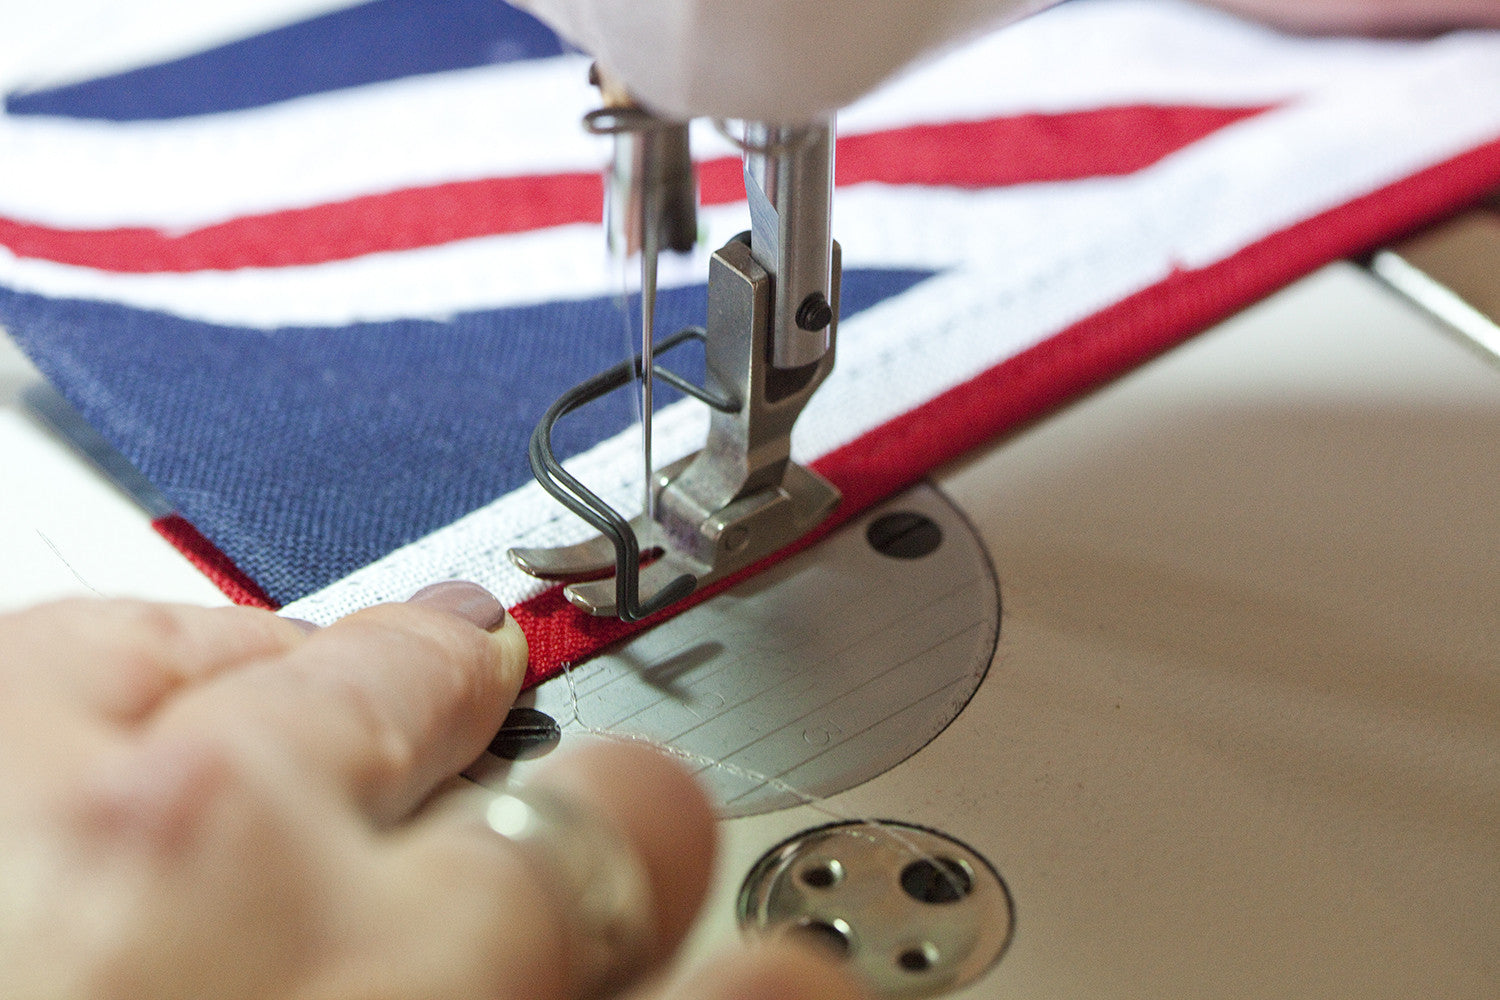 Sewing a Union Jack Flag